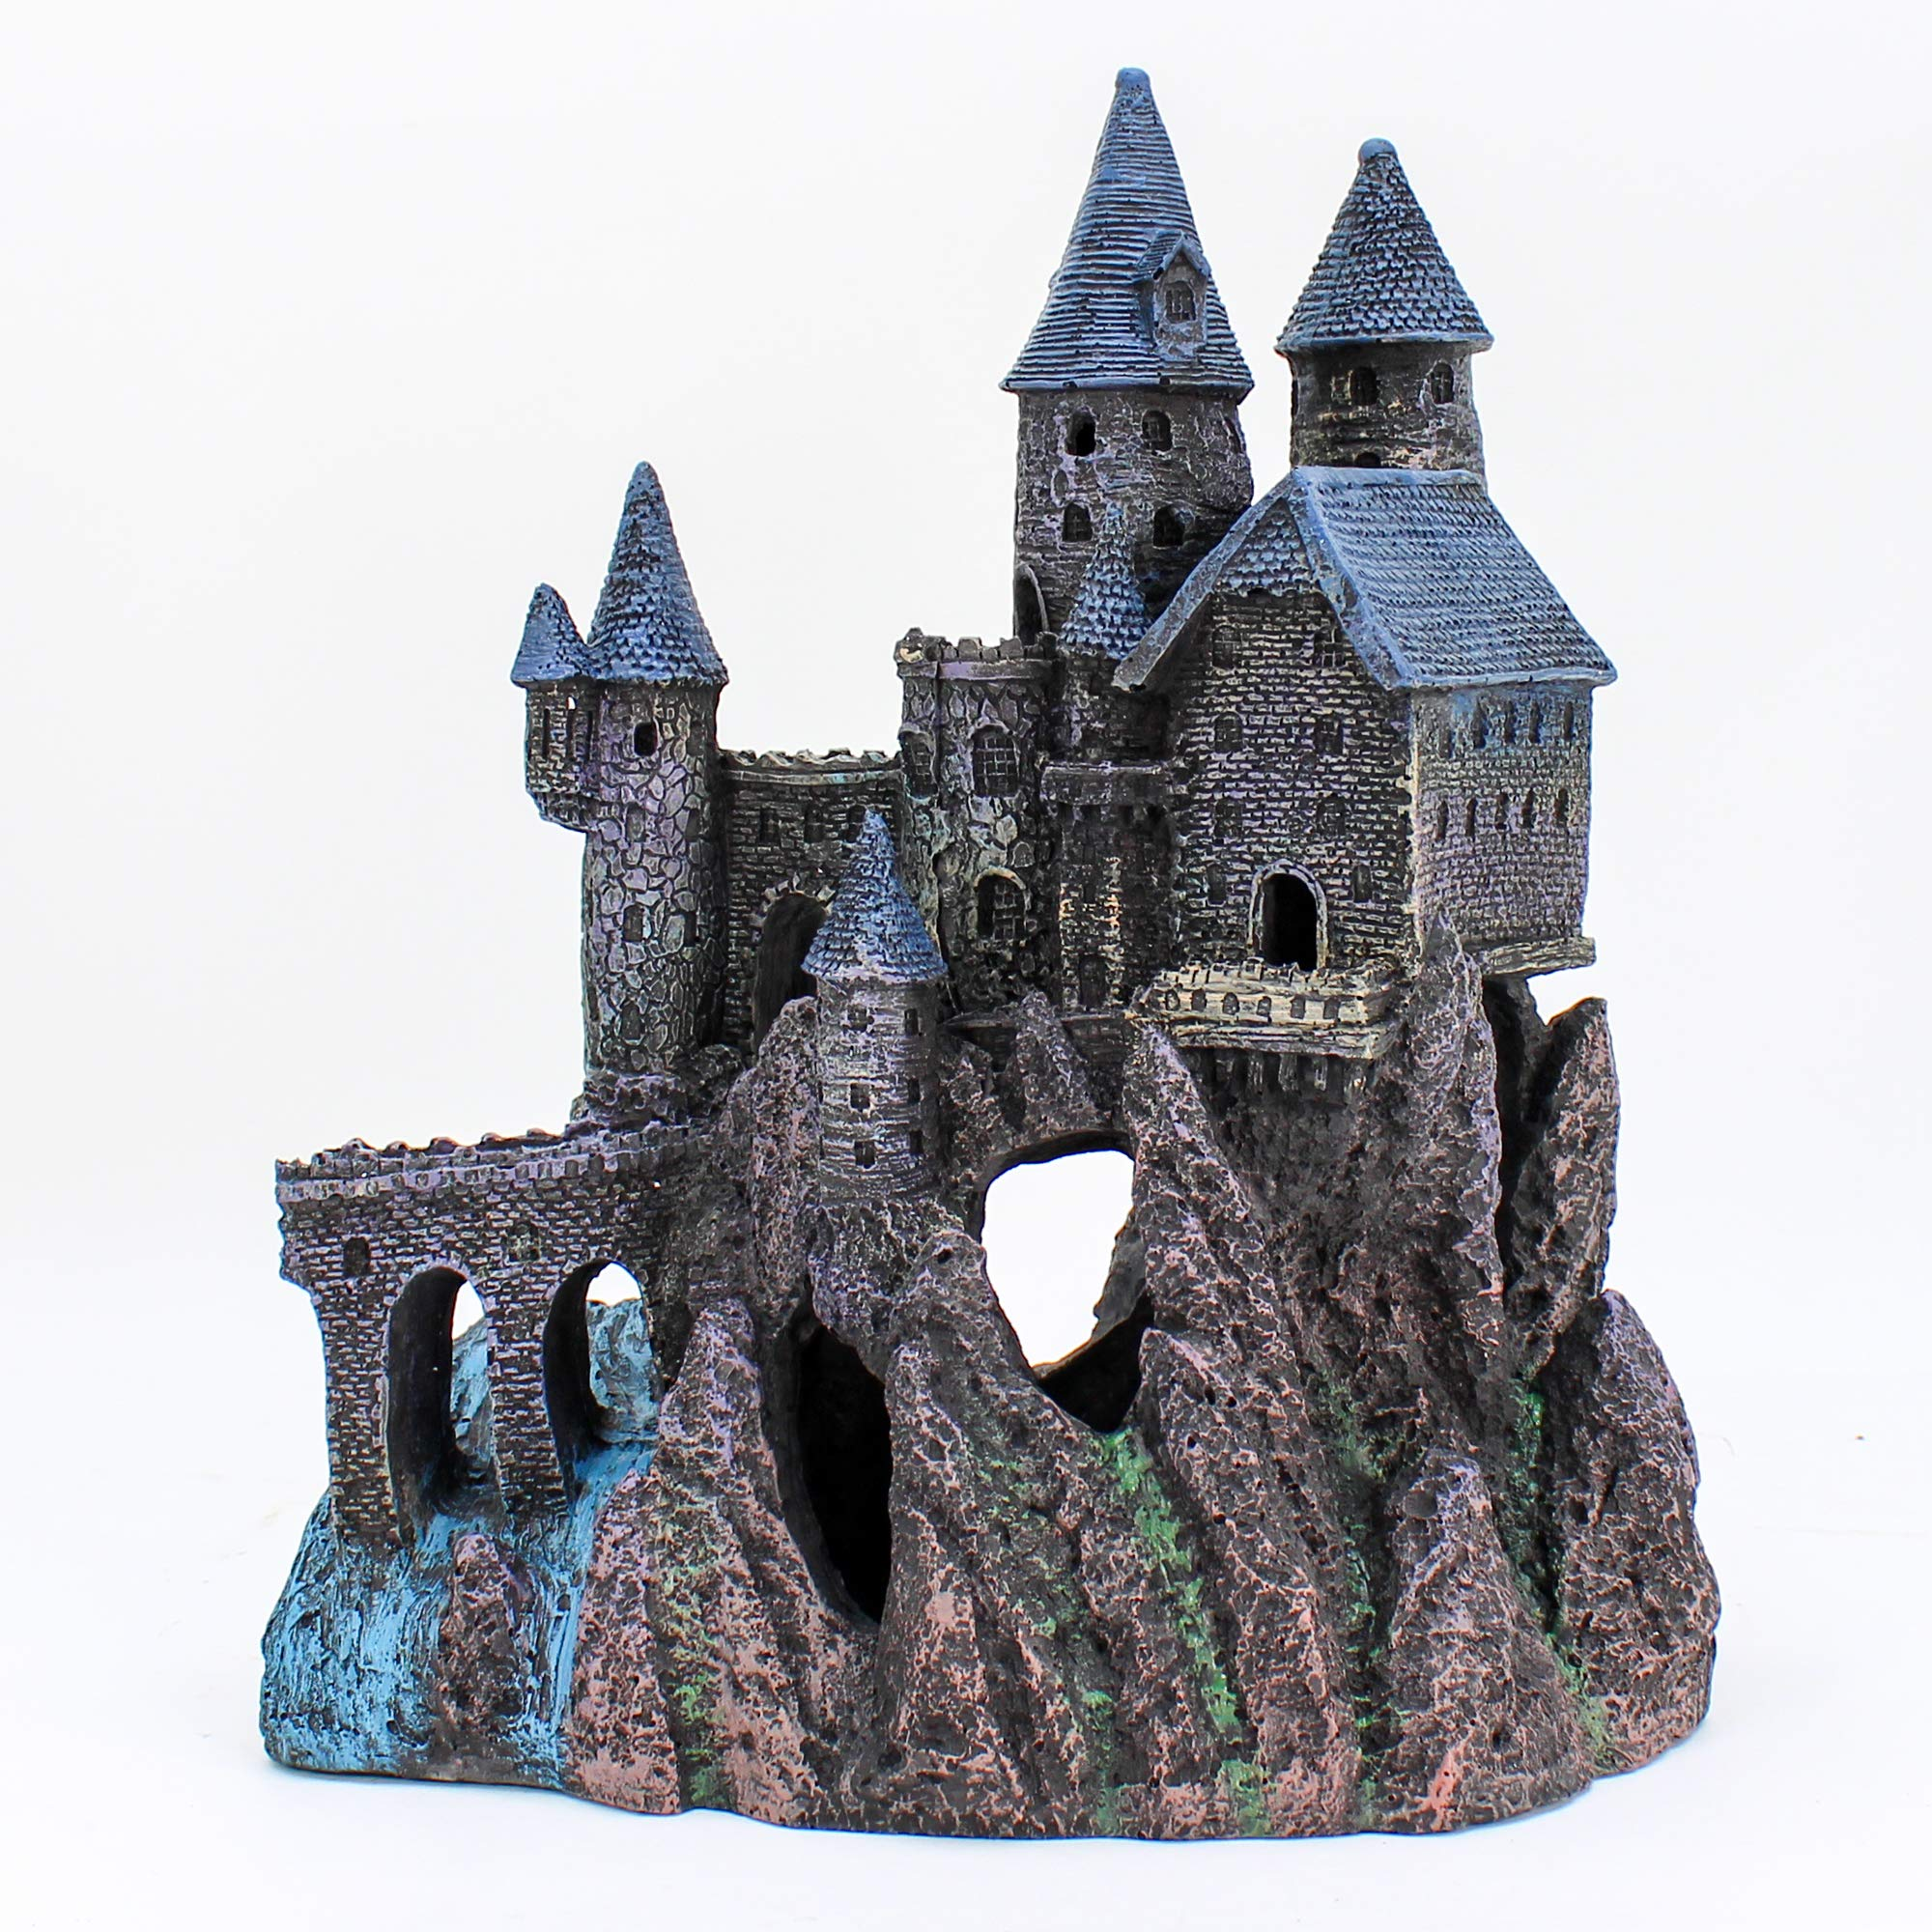 Penn Plax Castle Aquarium Decoration Hand Painted with Realistic Details Over 14.5 Inches High Part B by Penn Plax